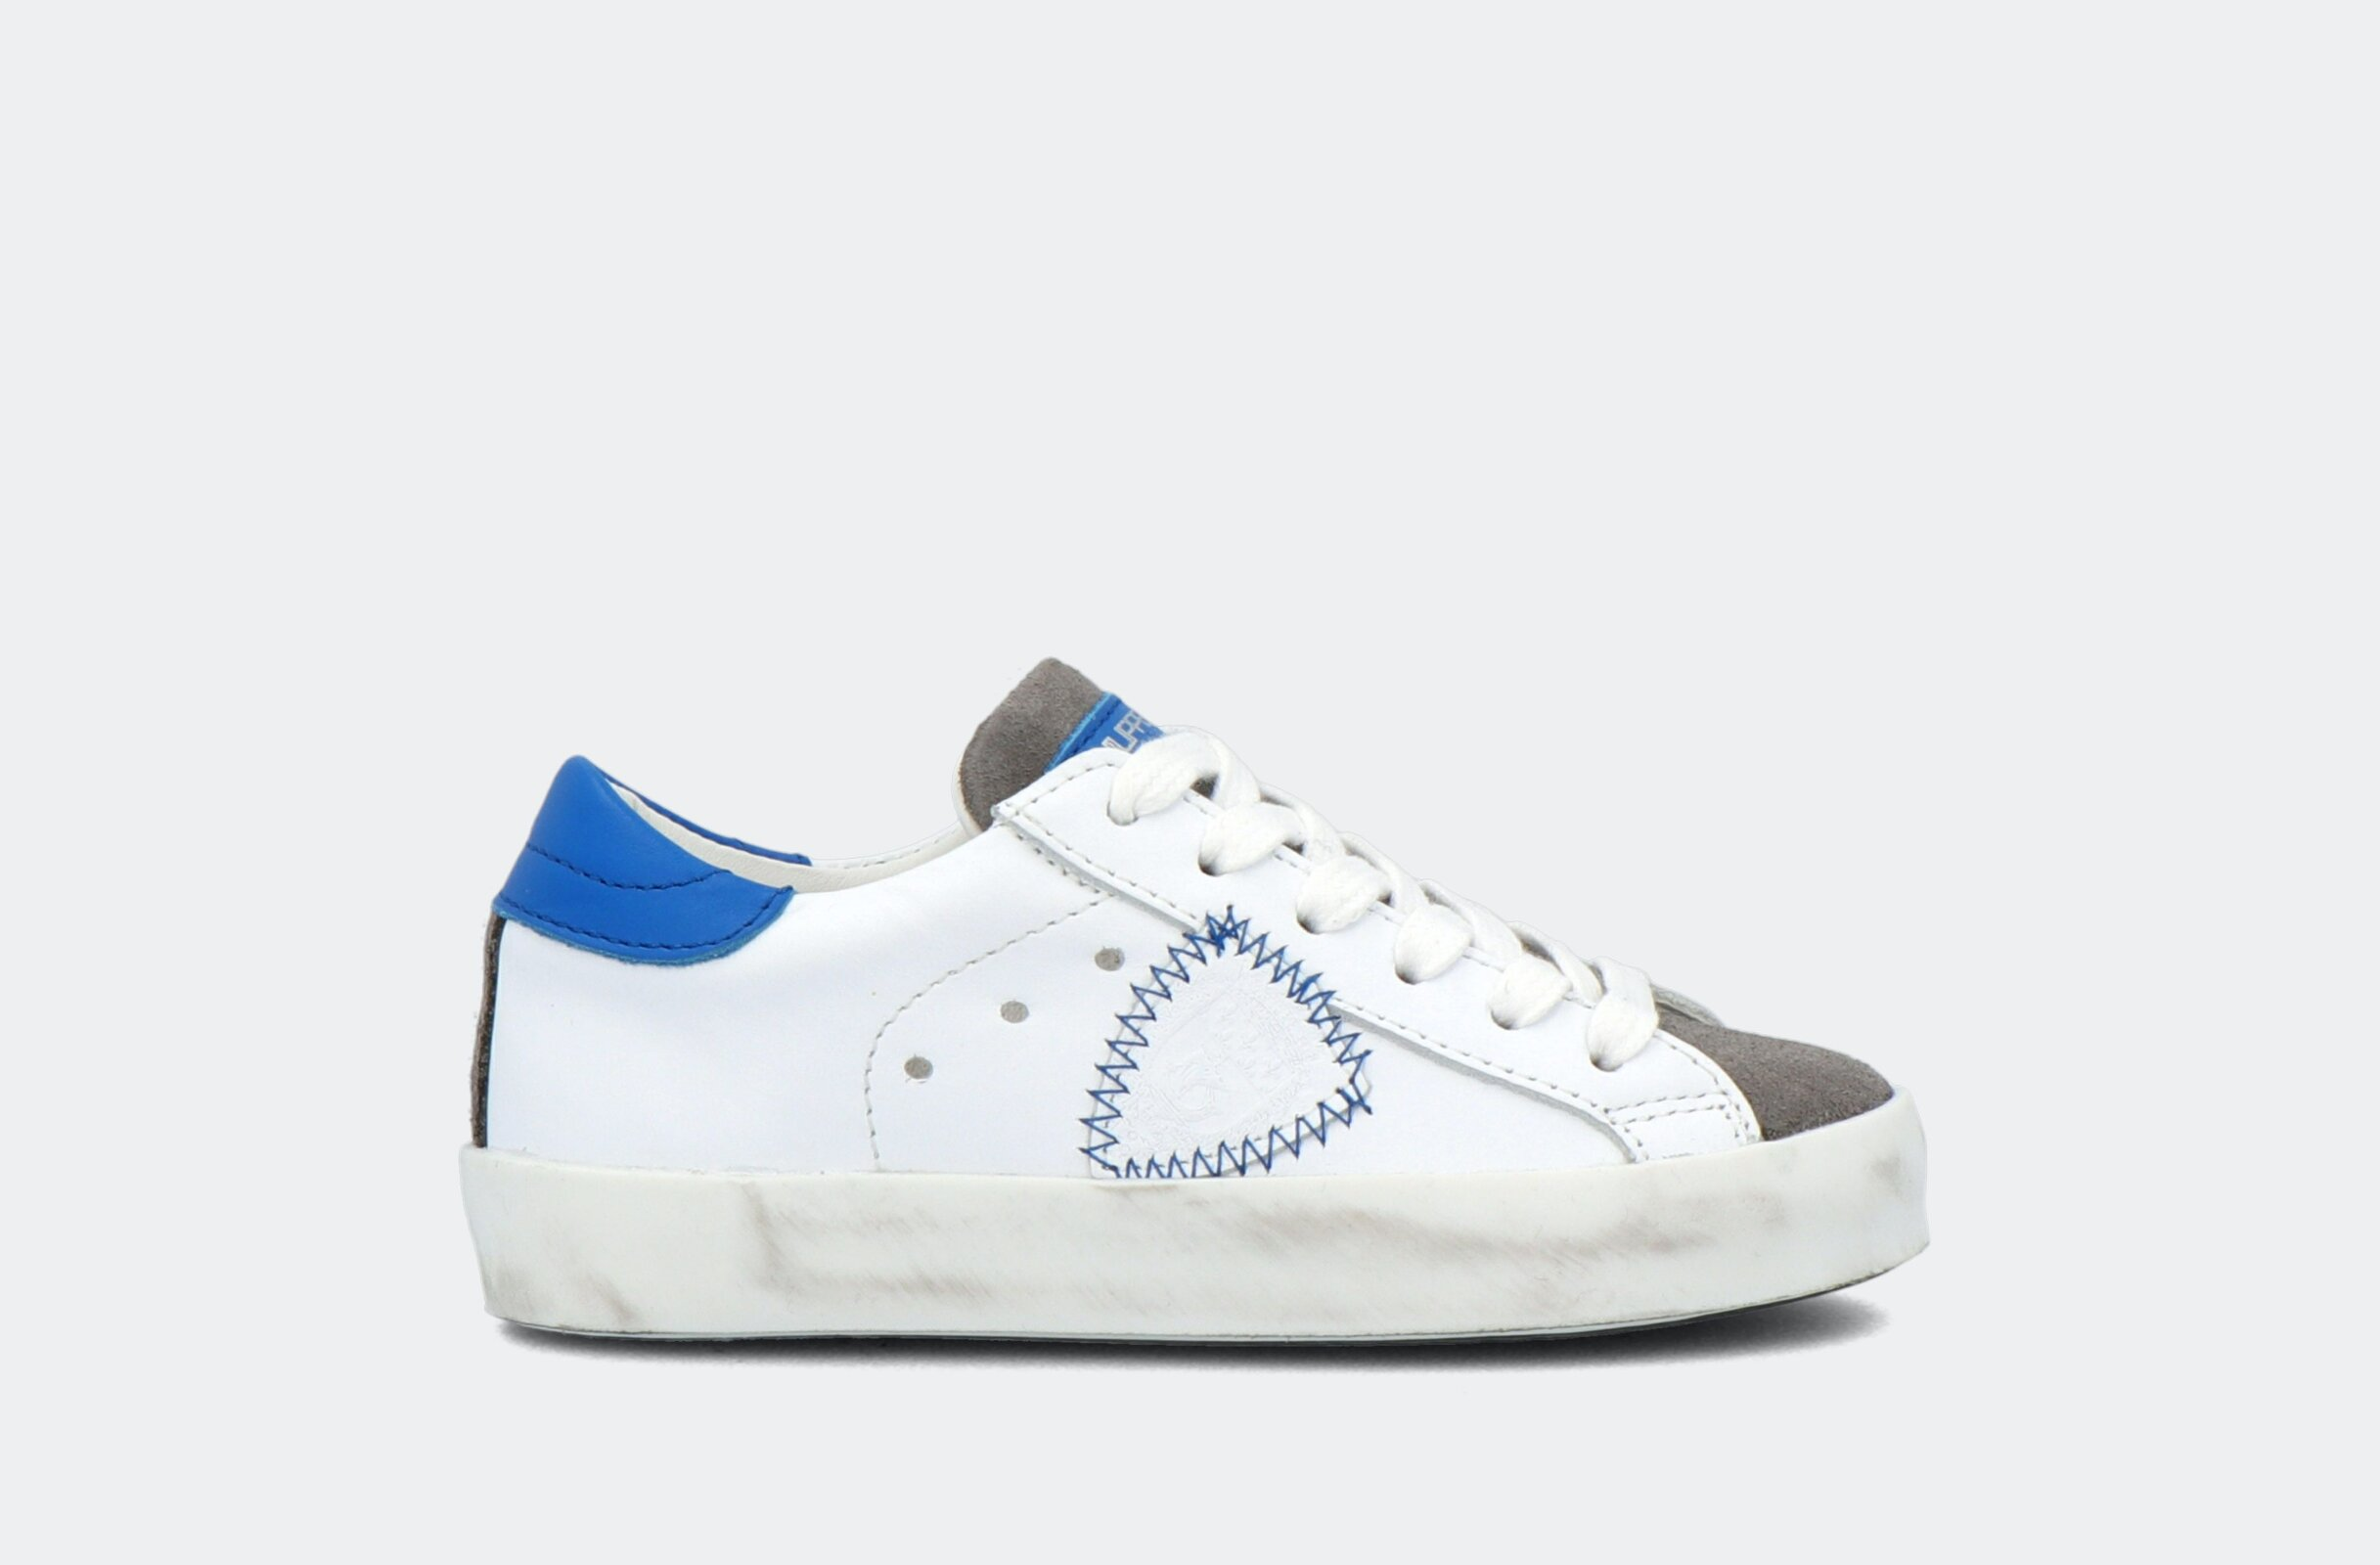 Paris L Juniorveau Mixage Blanc Bluette - Philippe Model Junior